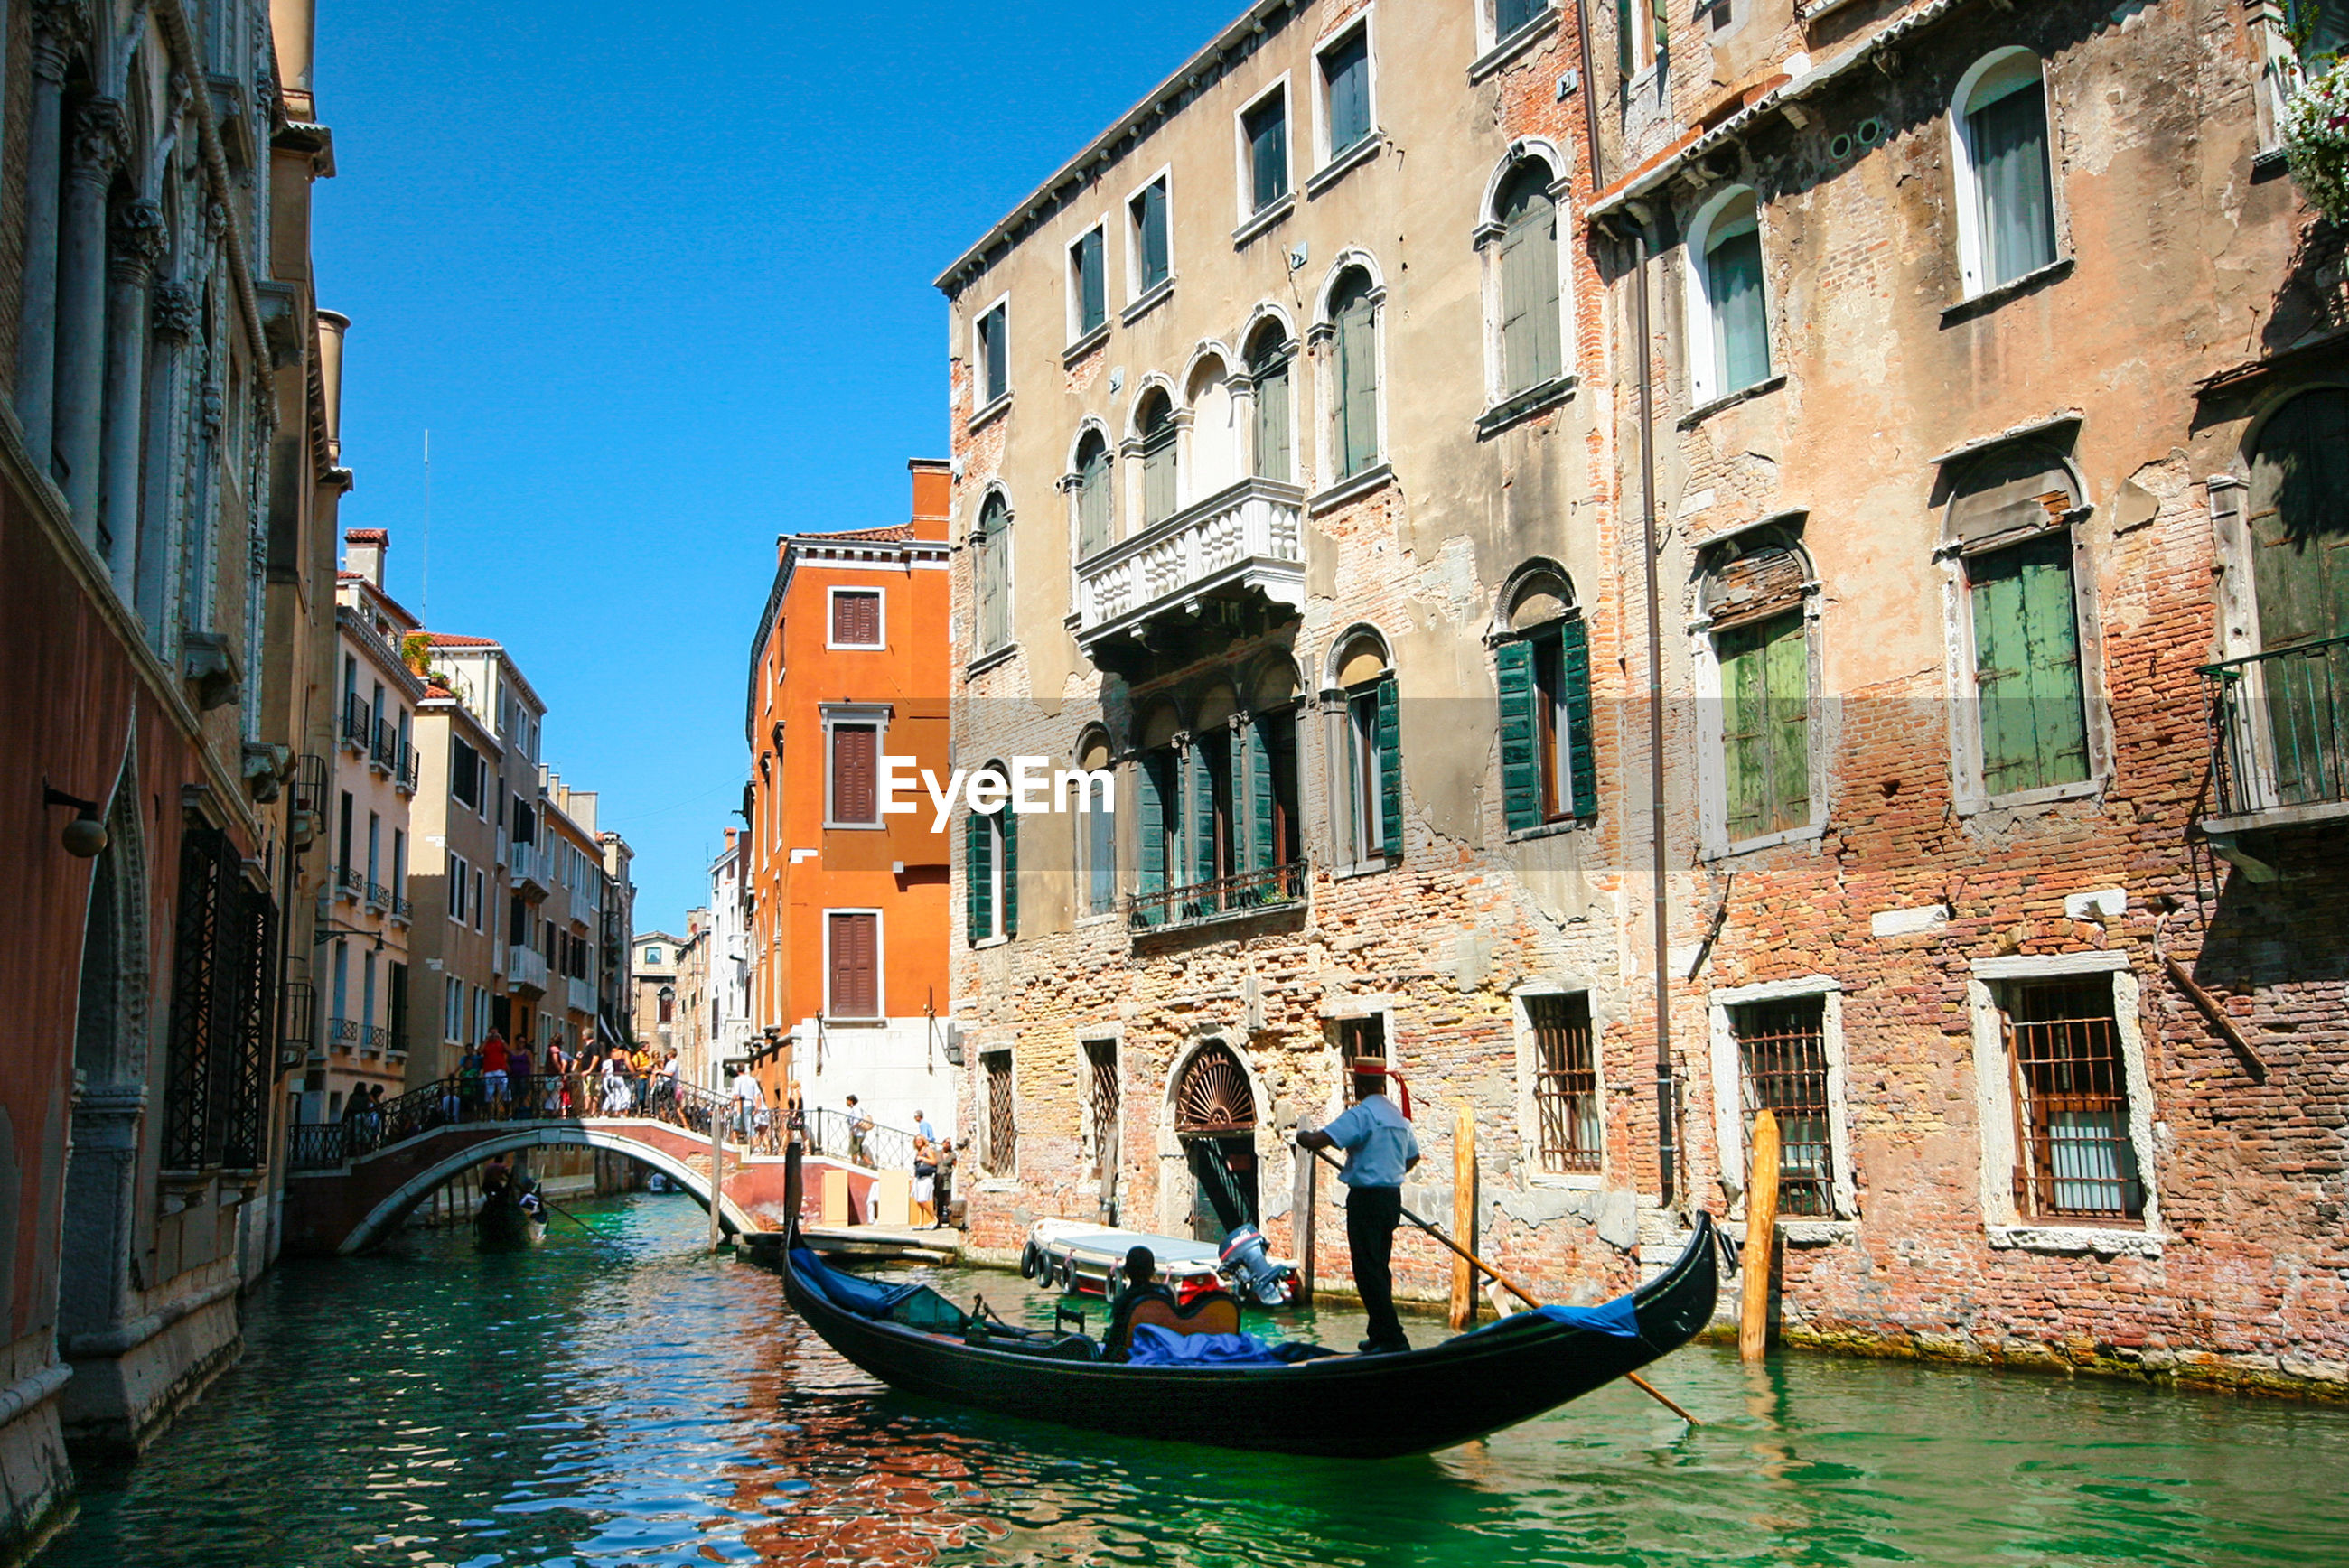 building exterior, cultures, architecture, gondola - traditional boat, travel destinations, built structure, canal, men, city, outdoors, gondolier, people, adults only, real people, water, adult, day, only men